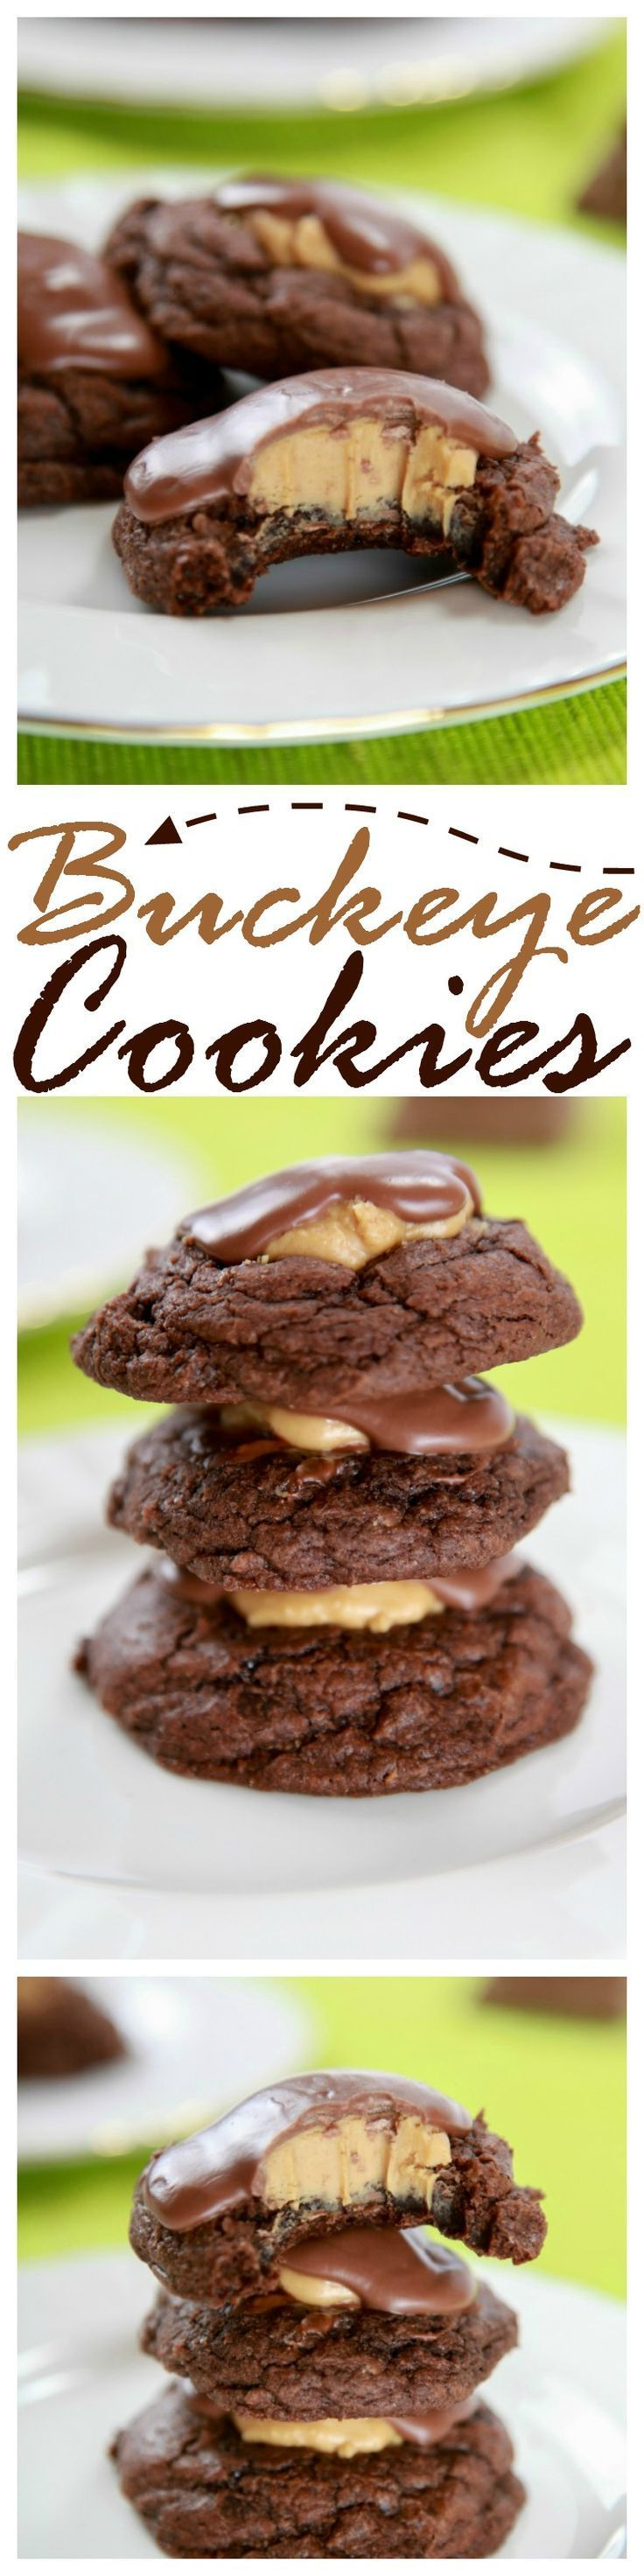 Buckeye Cookies: Chewy fudge brownie cookies, topped with peanut butter icing, and a milk chocolate drizzle.